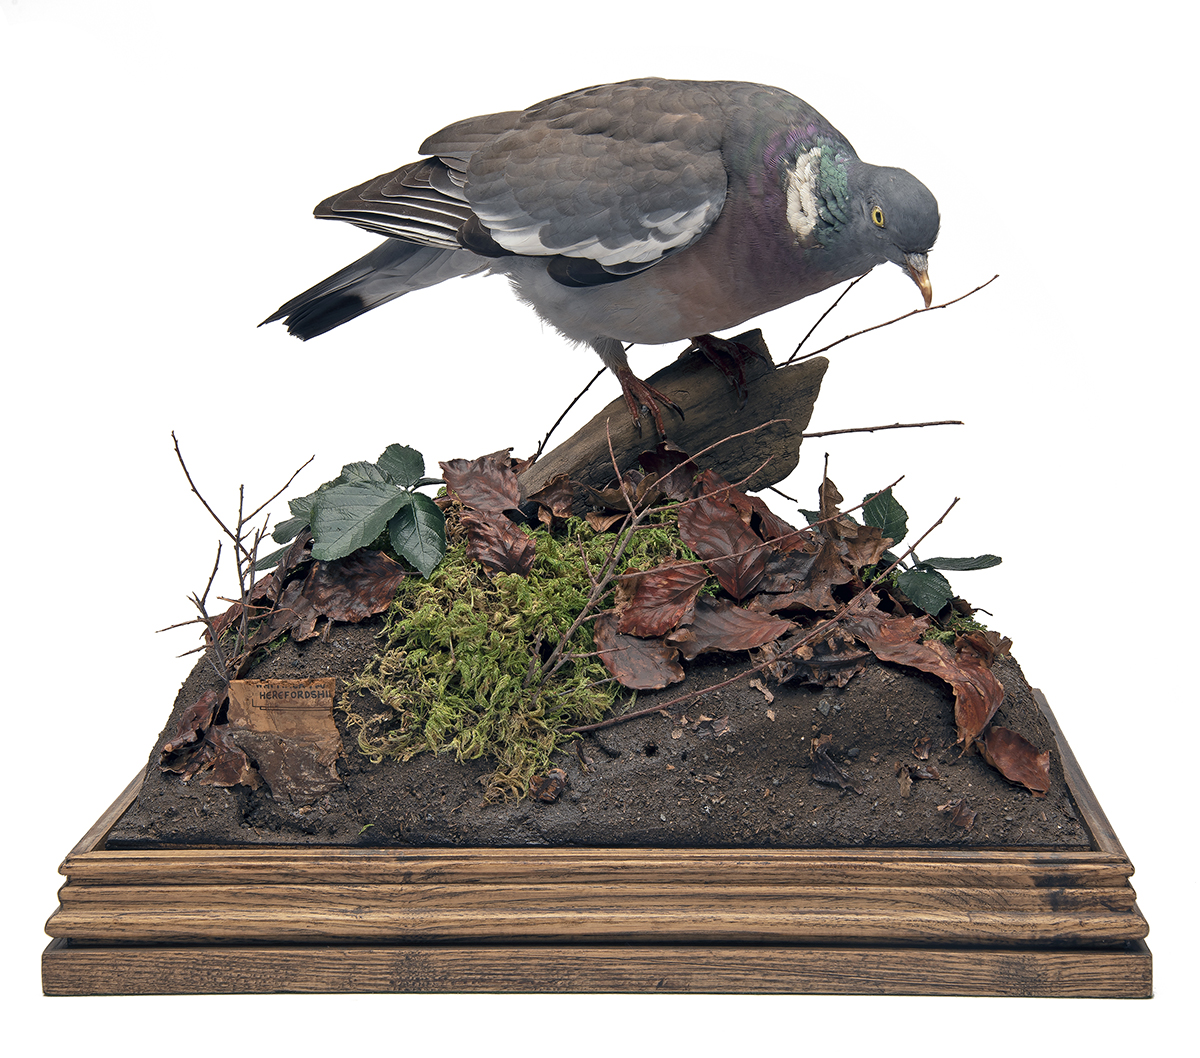 A FINE FULL-MOUNT OF A WOOD PIGEON, set in its natural habitat with two spent .410 cartridges and